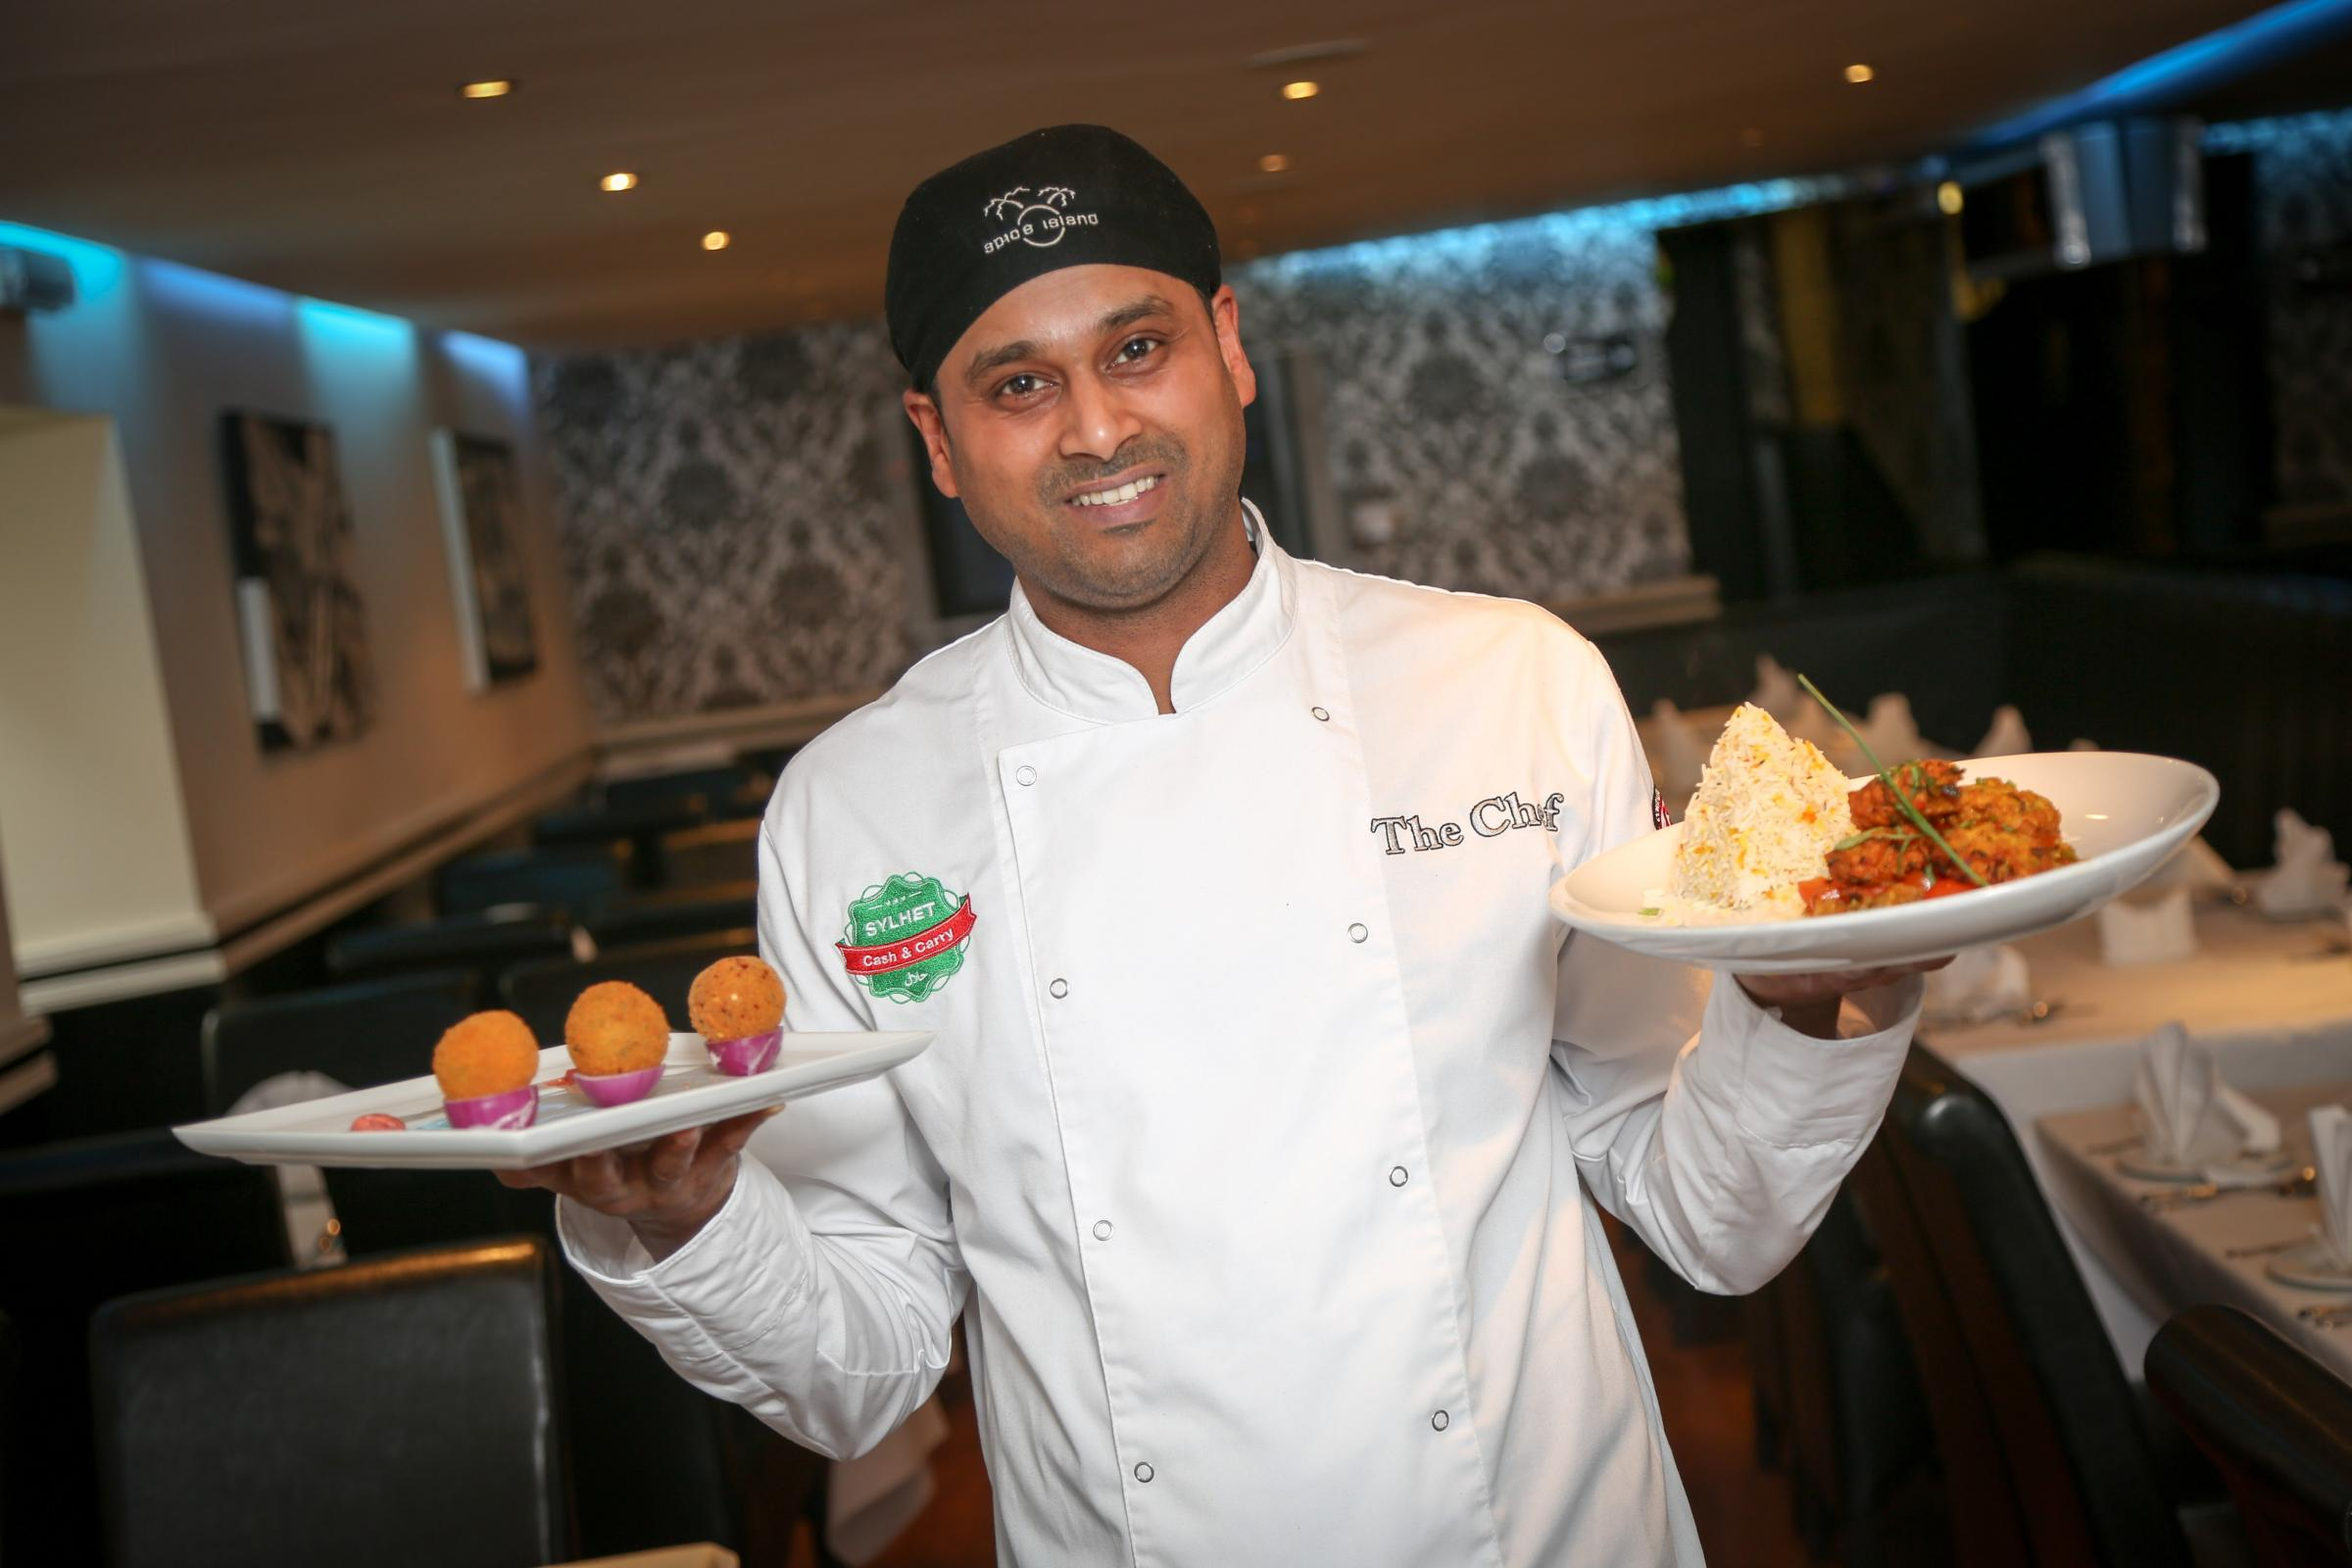 Chef Milon Miah, who works at Spice Island in Barnard Castle, has been named best Indian chef in the North-East after competing in a TV cookery competition. Picture: TOM BANKS